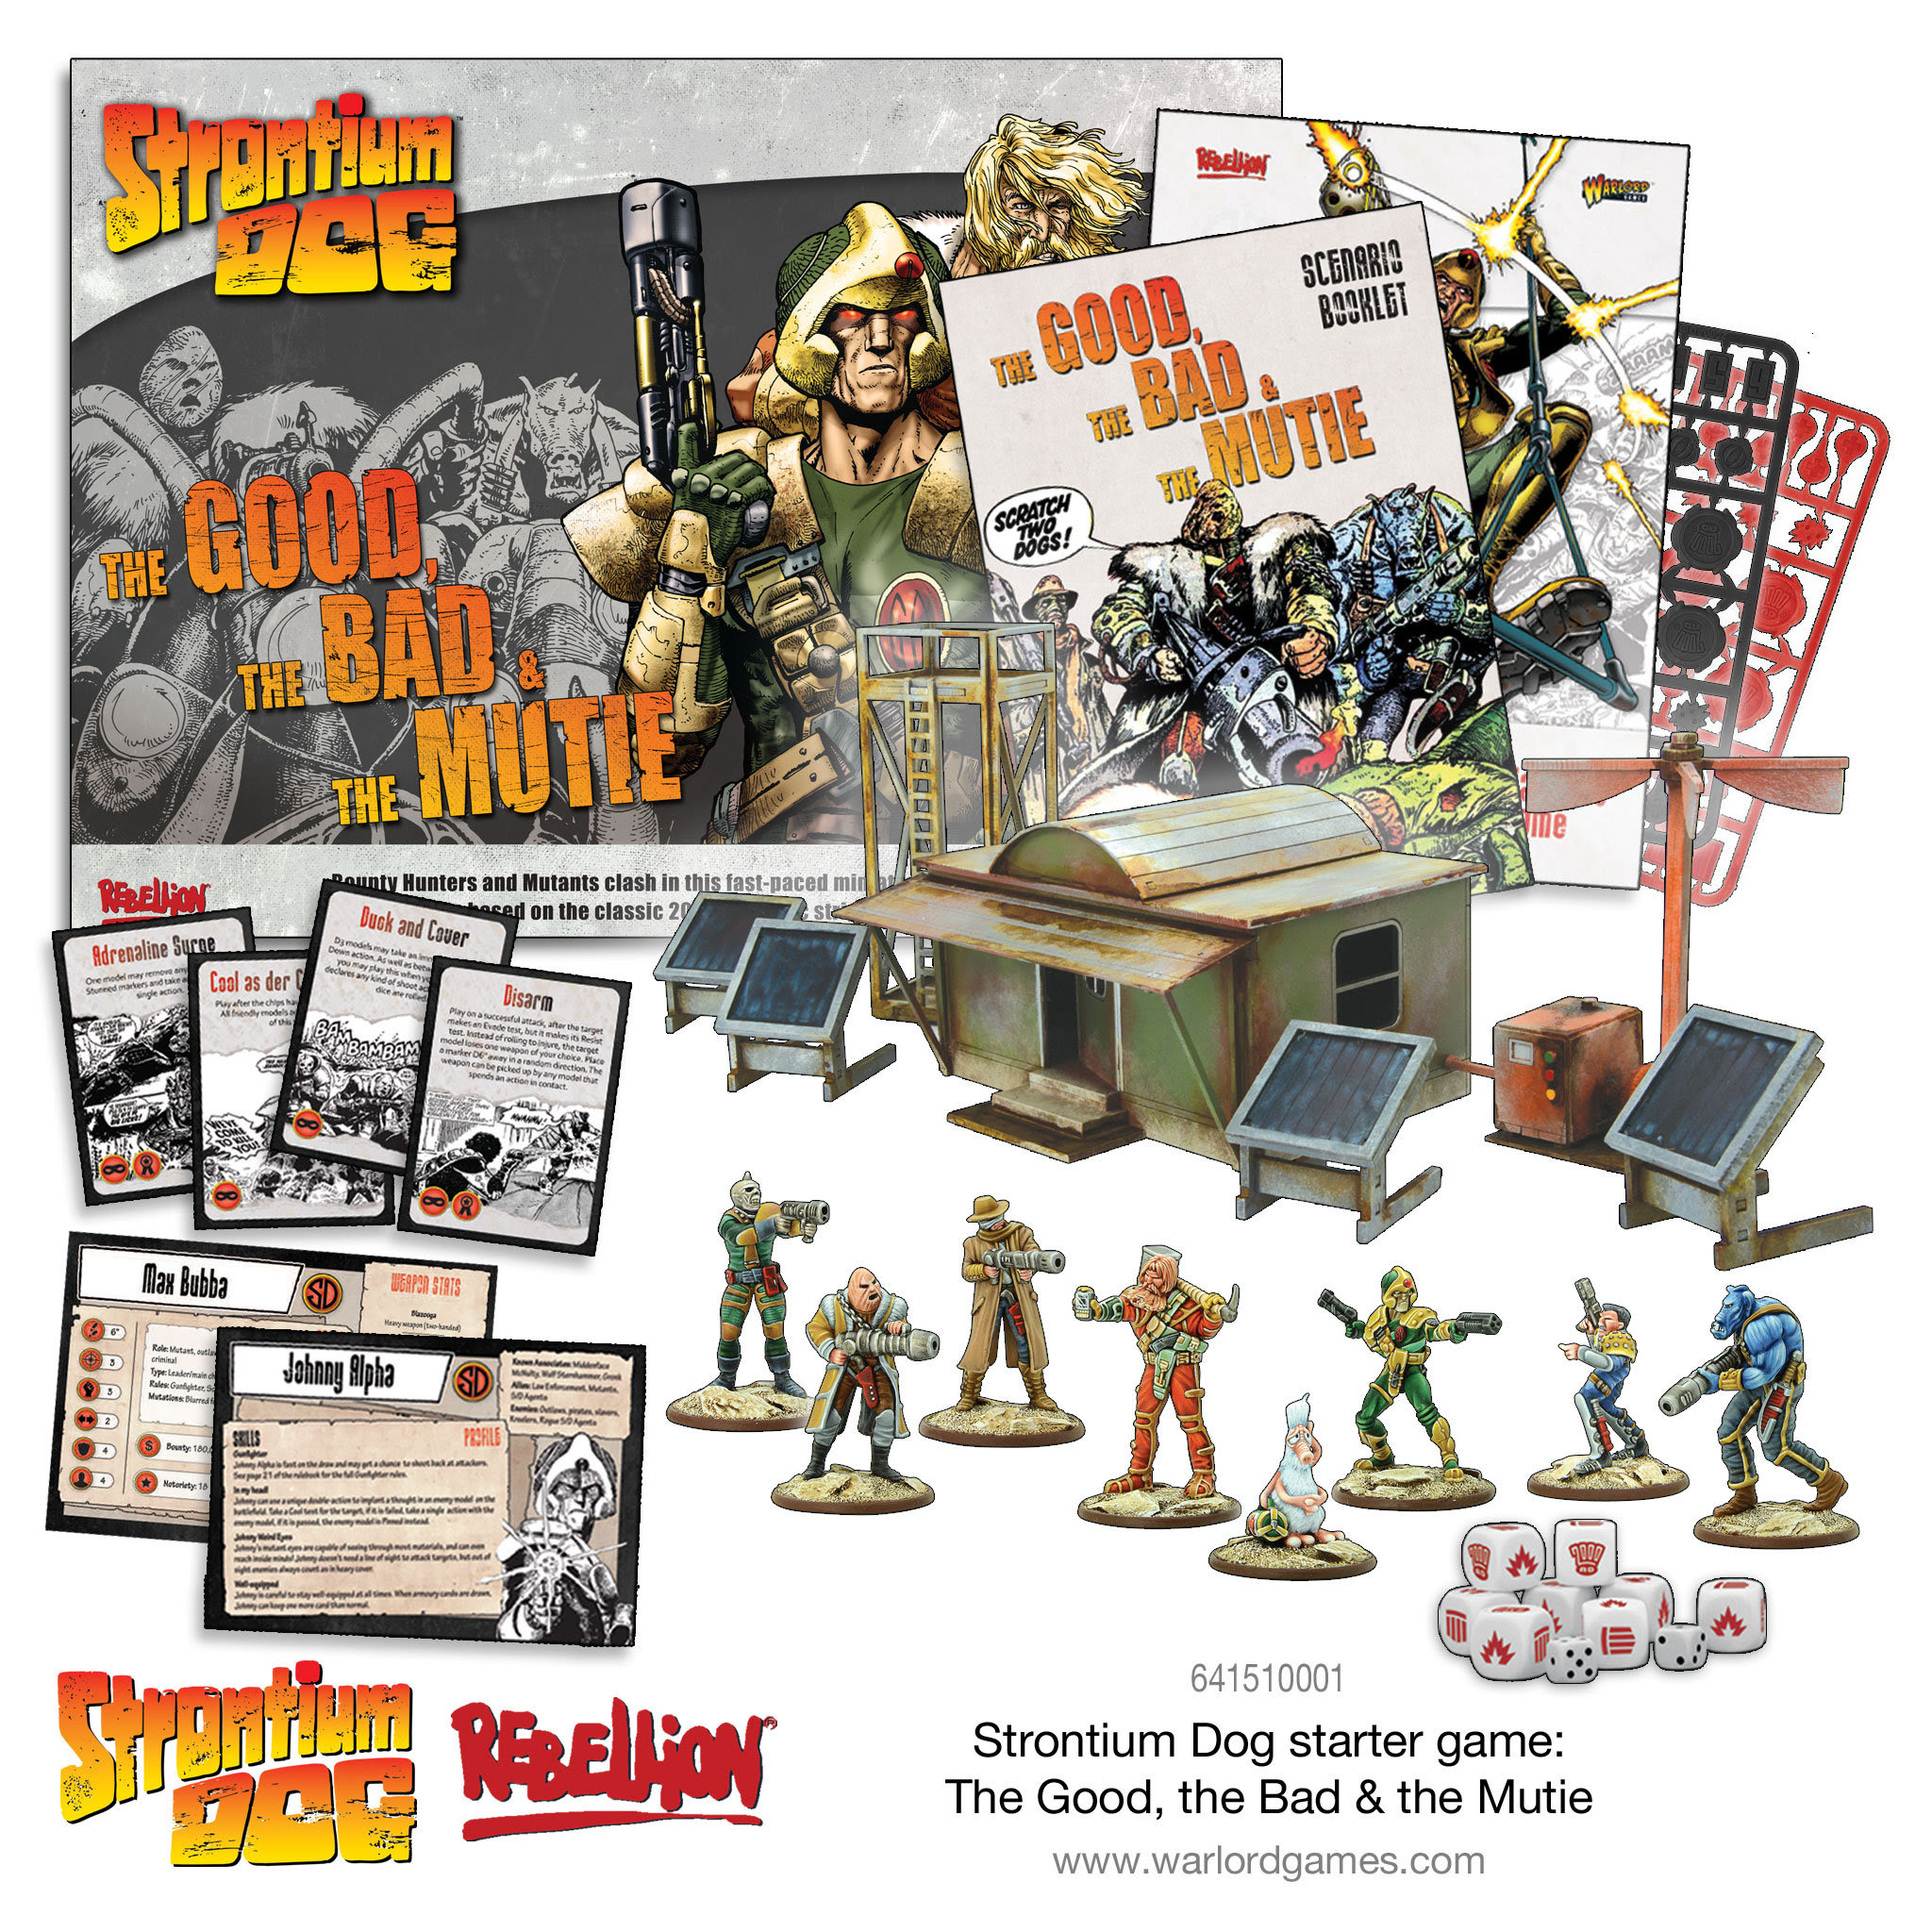 Strontium Dog - whats in the box article link